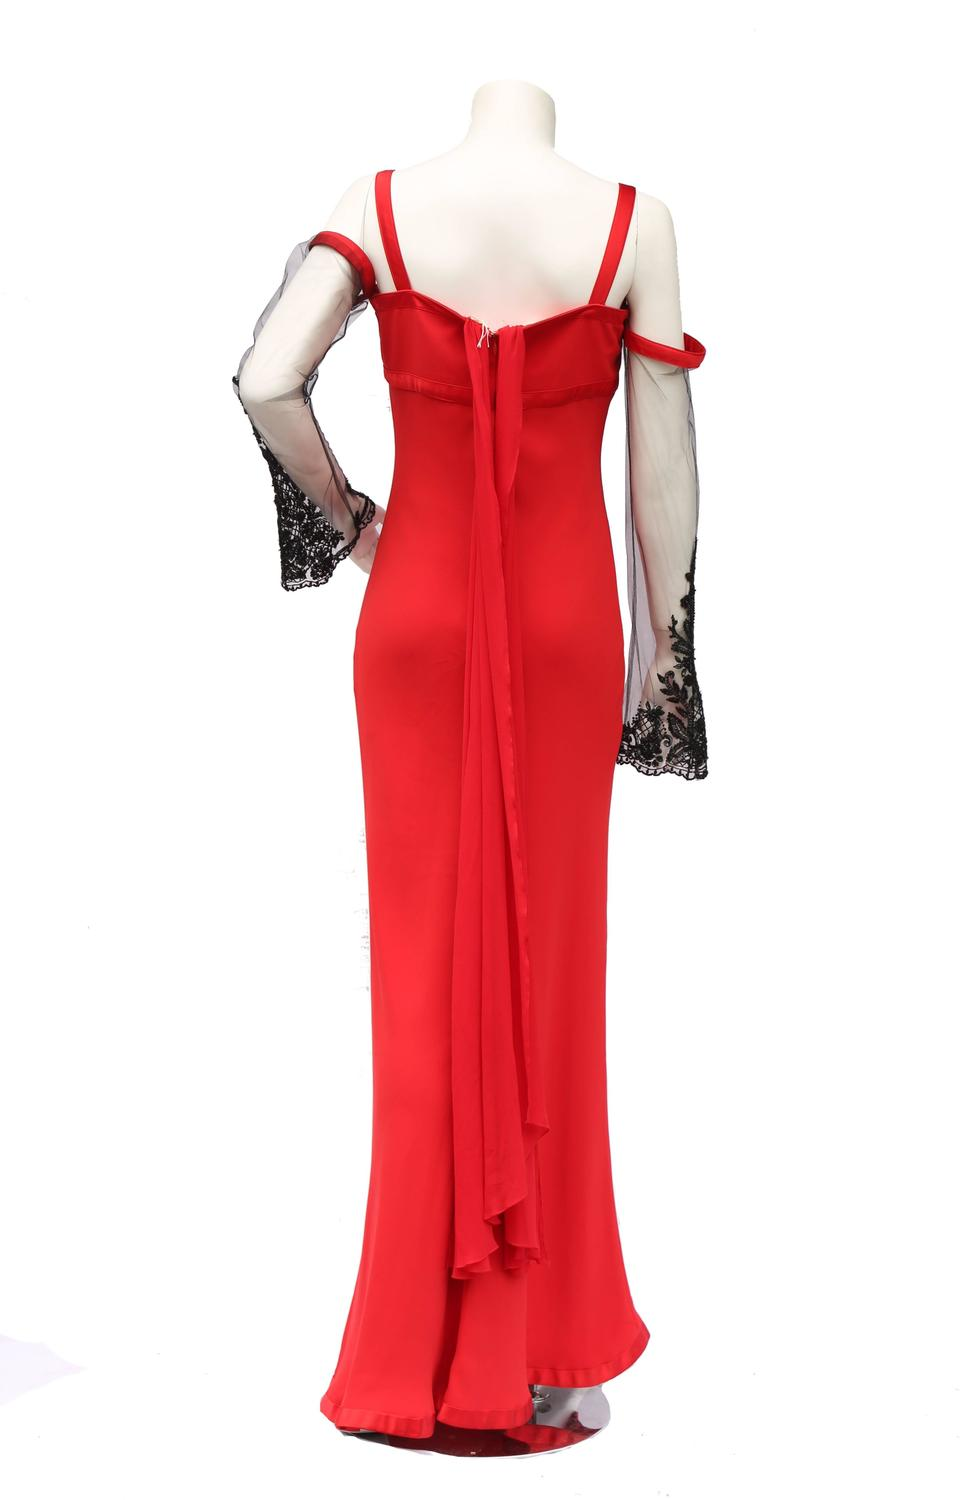 62efcf76a39 Valentino red silk evening gown dress For Sale at 1stdibs